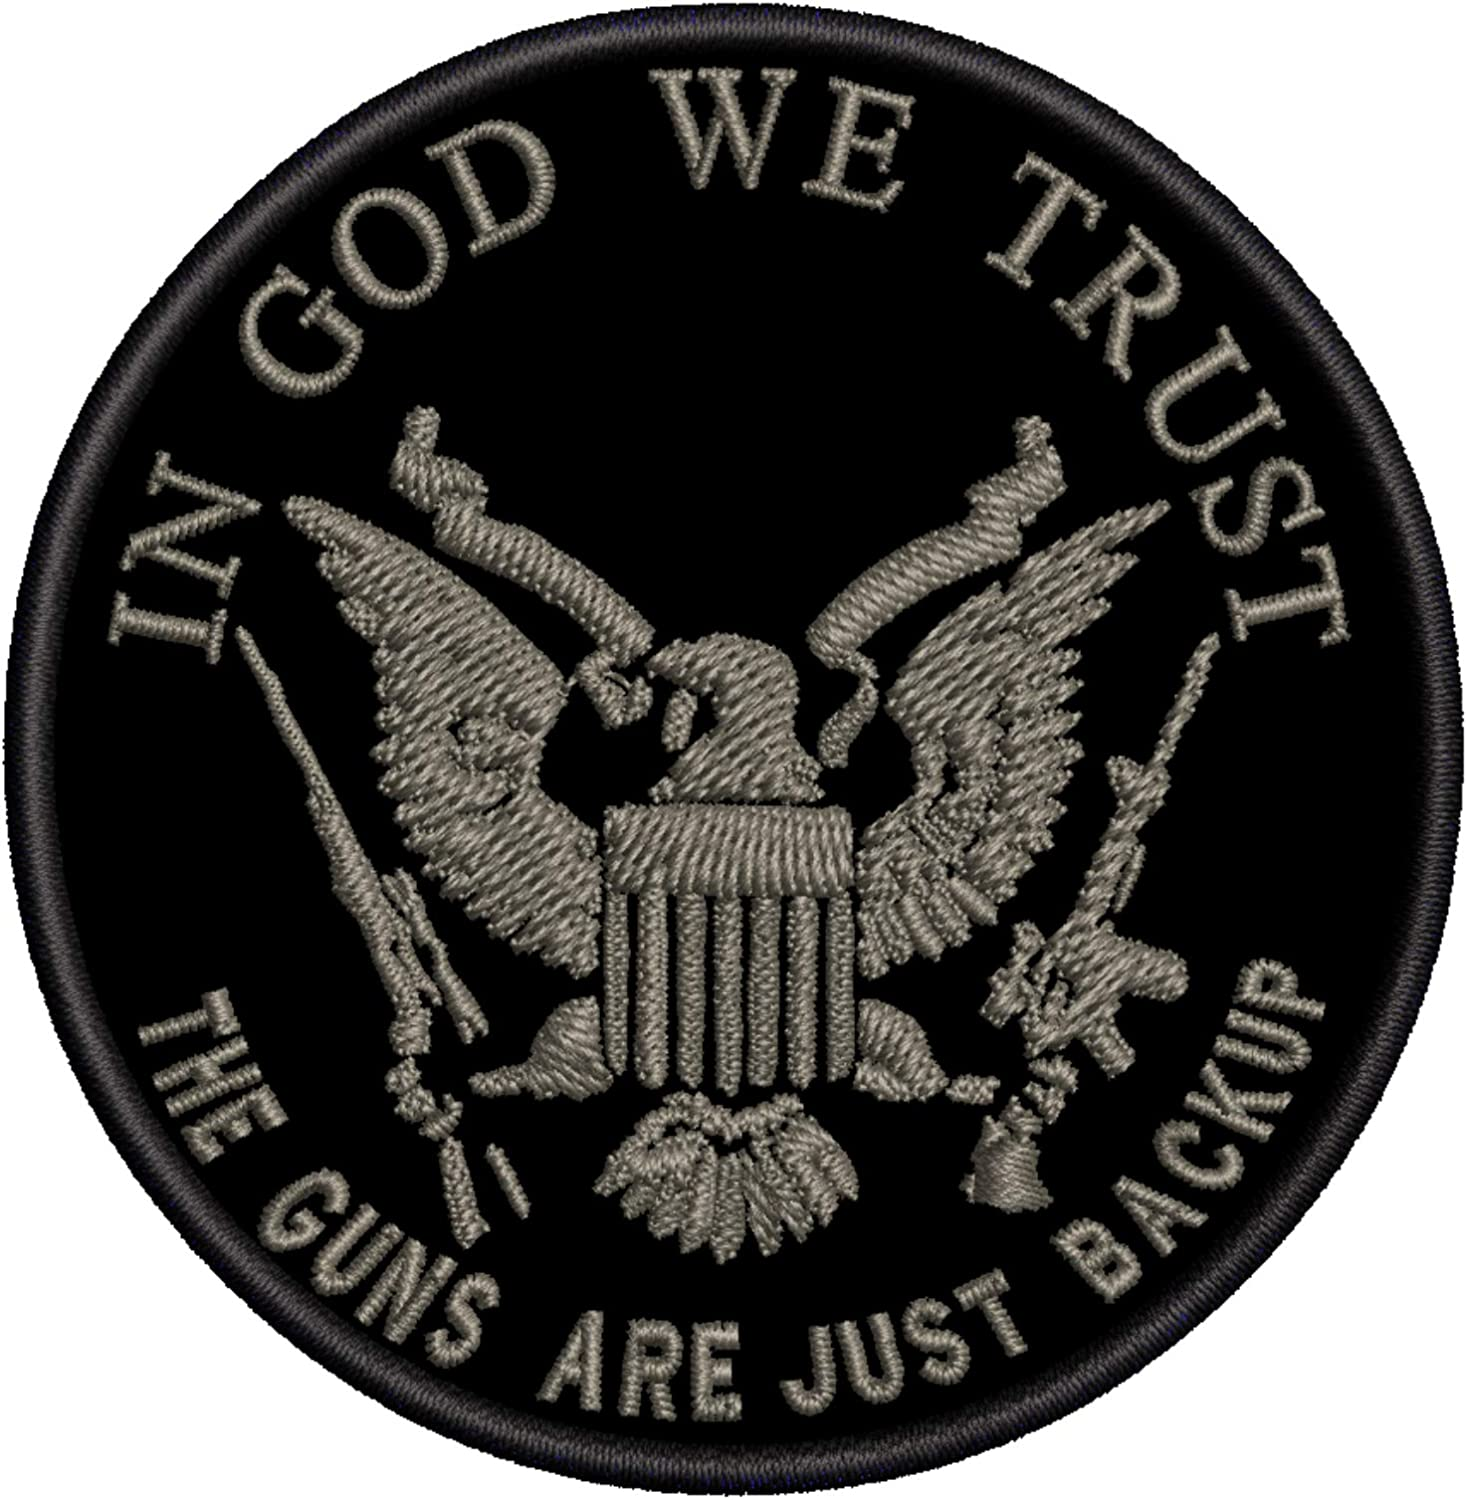 """In God We Trust The Guns Are Just Backup 3.5"""" Embroidered Patch DIY Iron or Sew-on Decorative Vacation Travel Souvenir Applique Biker Emblem Badge Military Veteran Tactical Flag 2A US USA Constitution"""